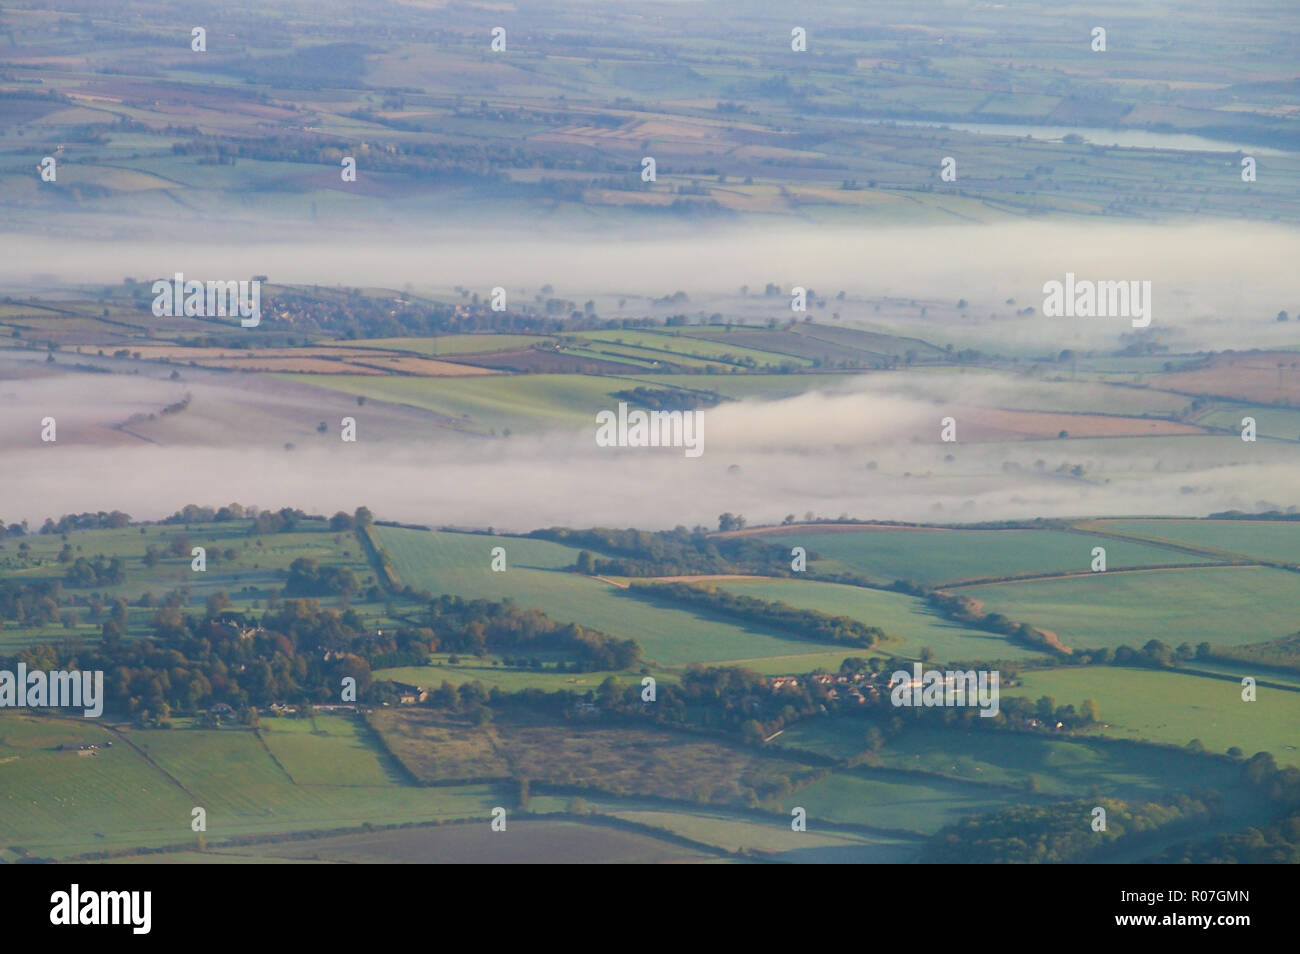 morning-mist-fog-ground-mist-ground-fog-low-on-cambridgeshire-countryside-viewed-from-a-plane-flying-overhead-aerial-view-space-for-copy-R07GMN.jpg